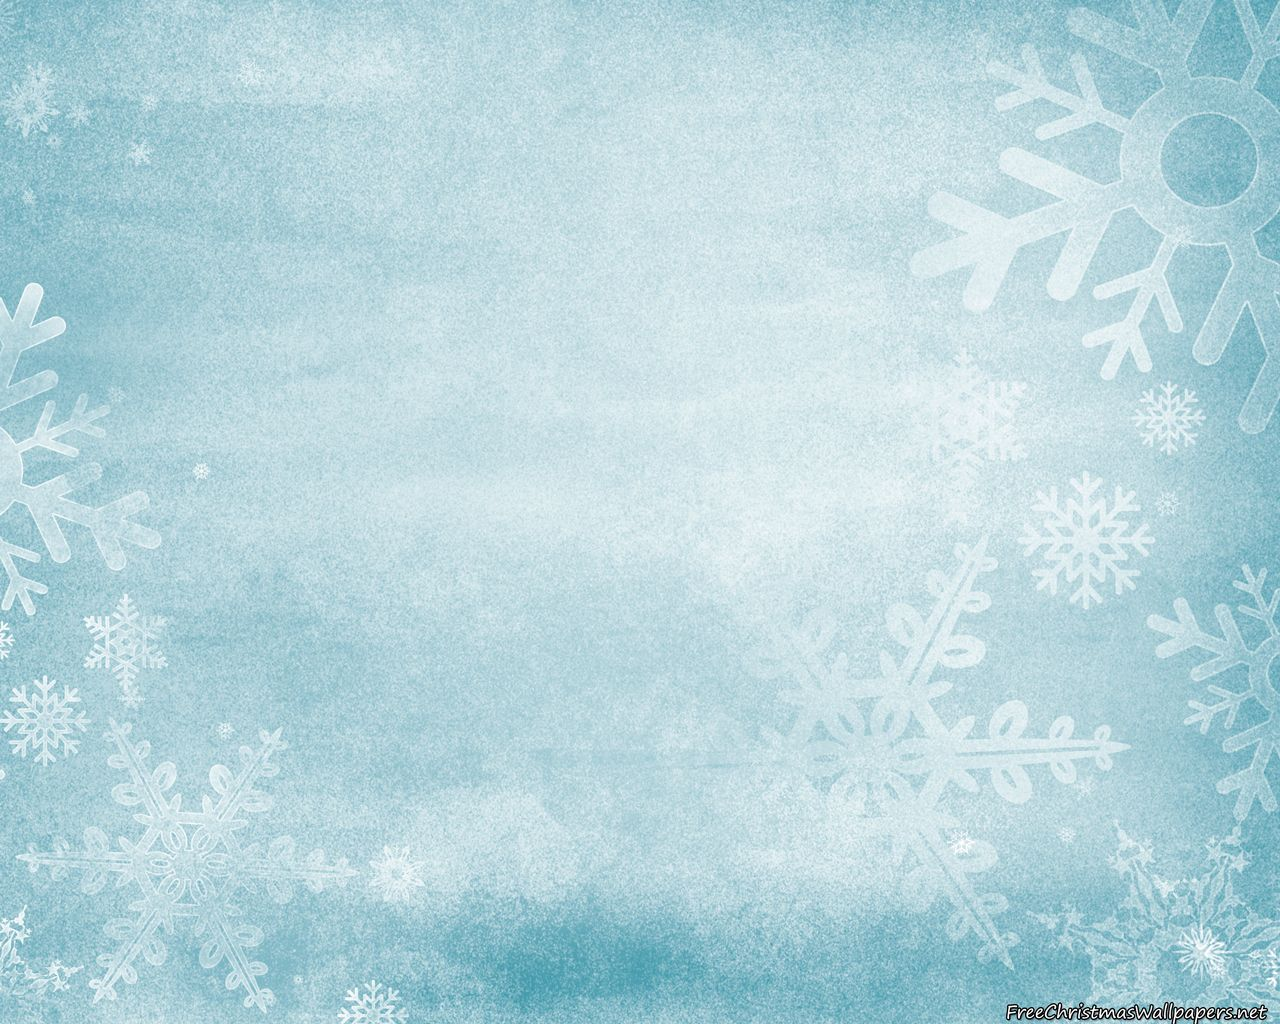 Frozen Christmas Background Wallpaper Share The Love And Traditions Decorate Your Desktop Backgrounds With Wallpapers